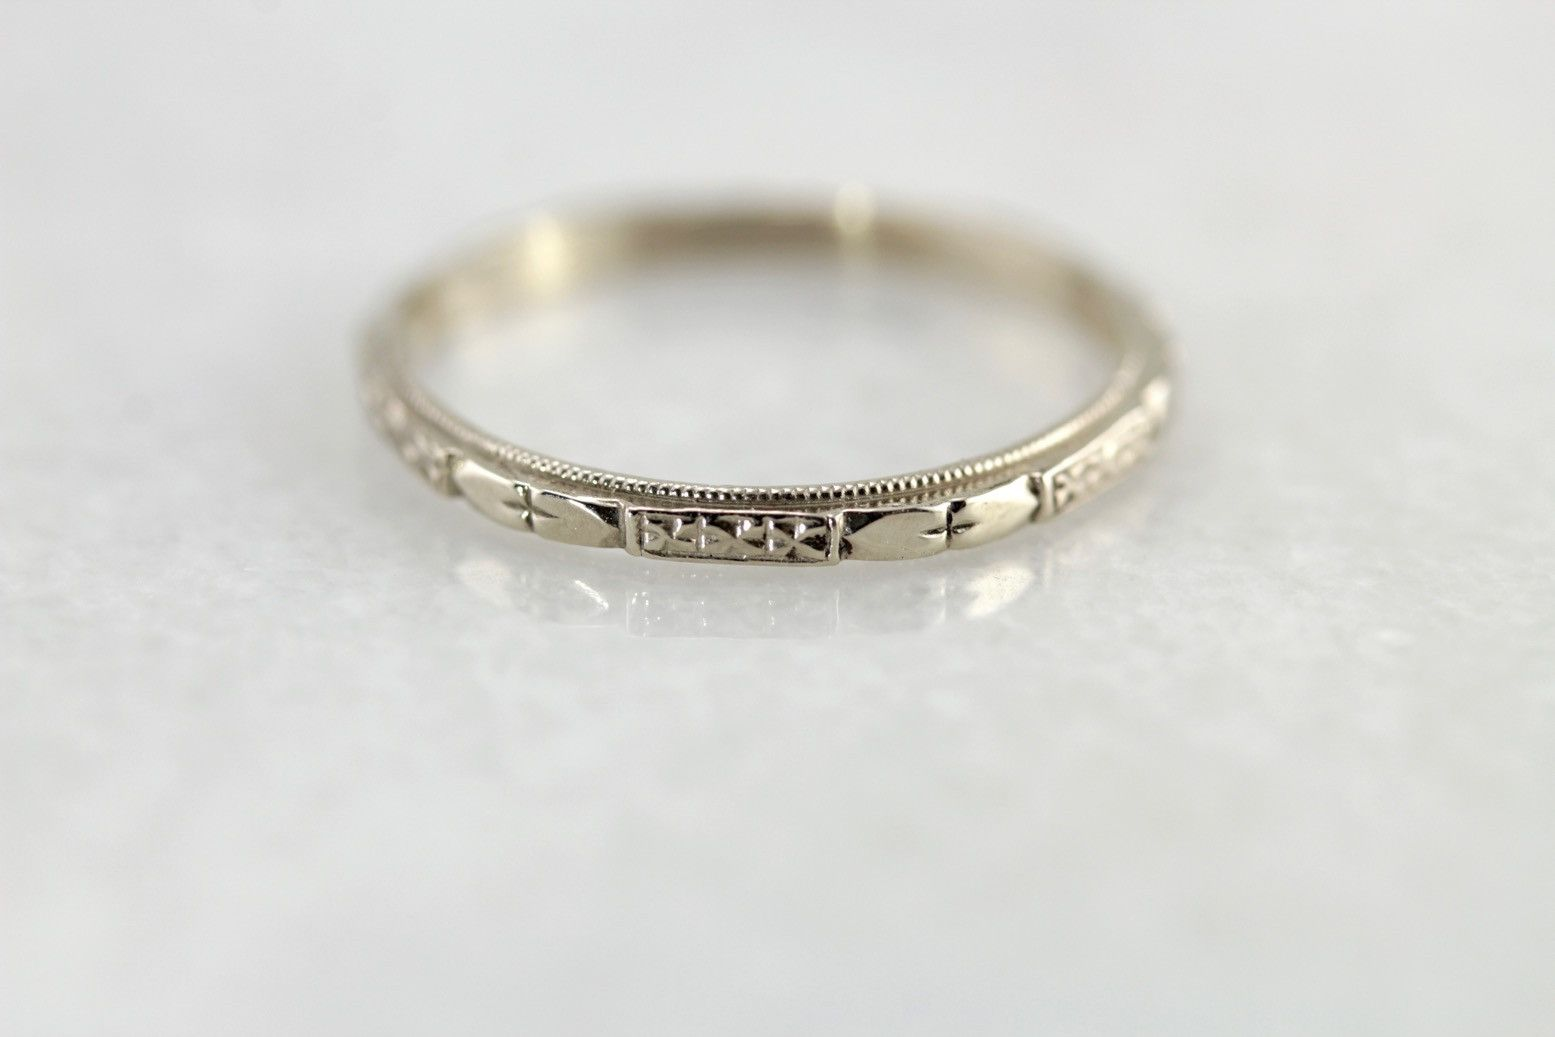 Portsmouth Nh Market Square Jewelers White Gold Forget Me Not Wedding Band The Cora Retro Era Remake By Elizabe White Gold Engagement Rings Wedding Bands